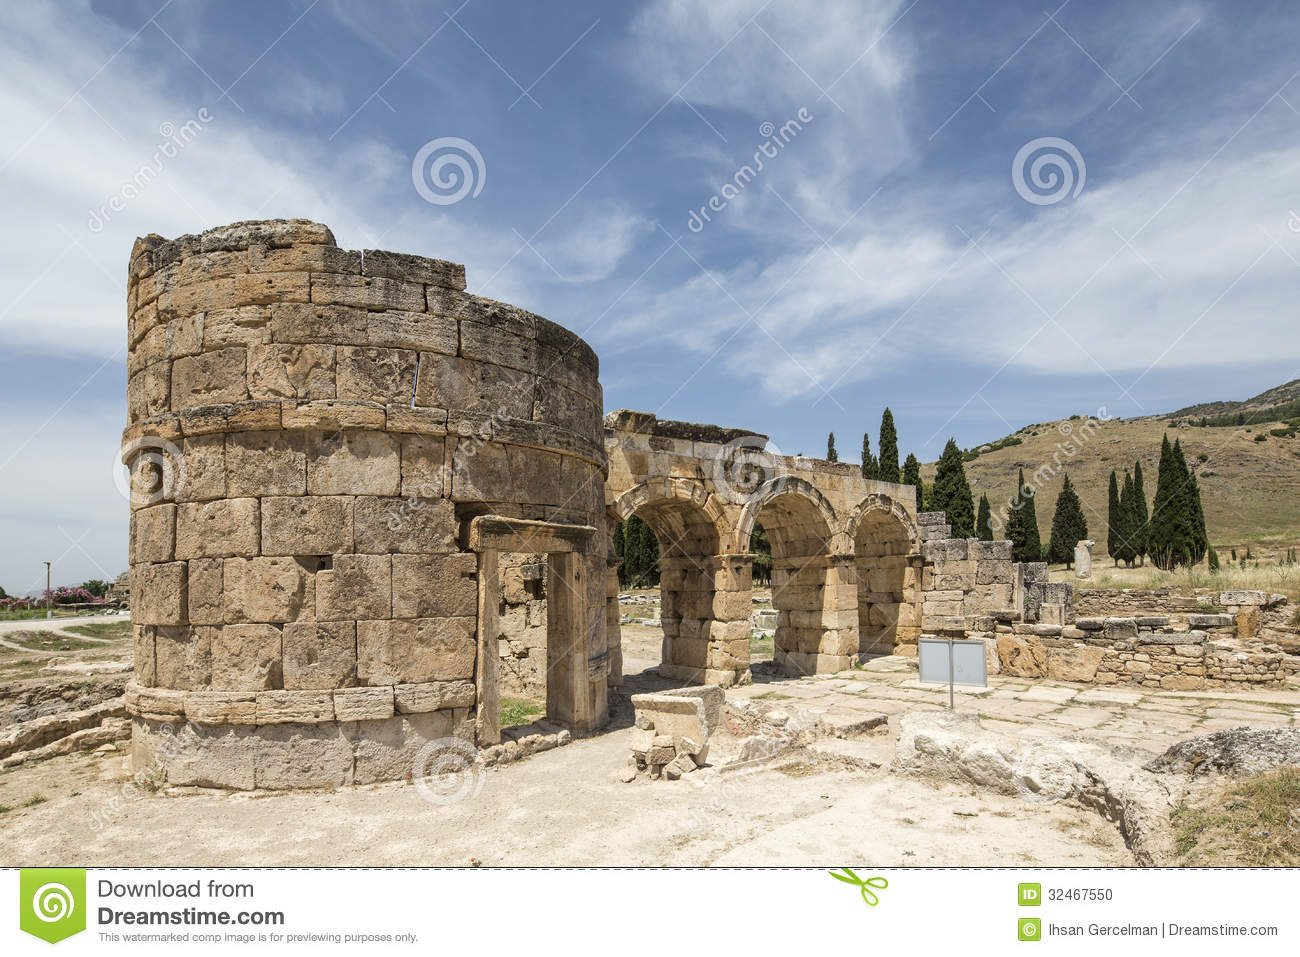 Denizli Turkey  City new picture : The Fortinus Gate in Hierapolis, Denizli, Turkey. Hierapolis was an ...